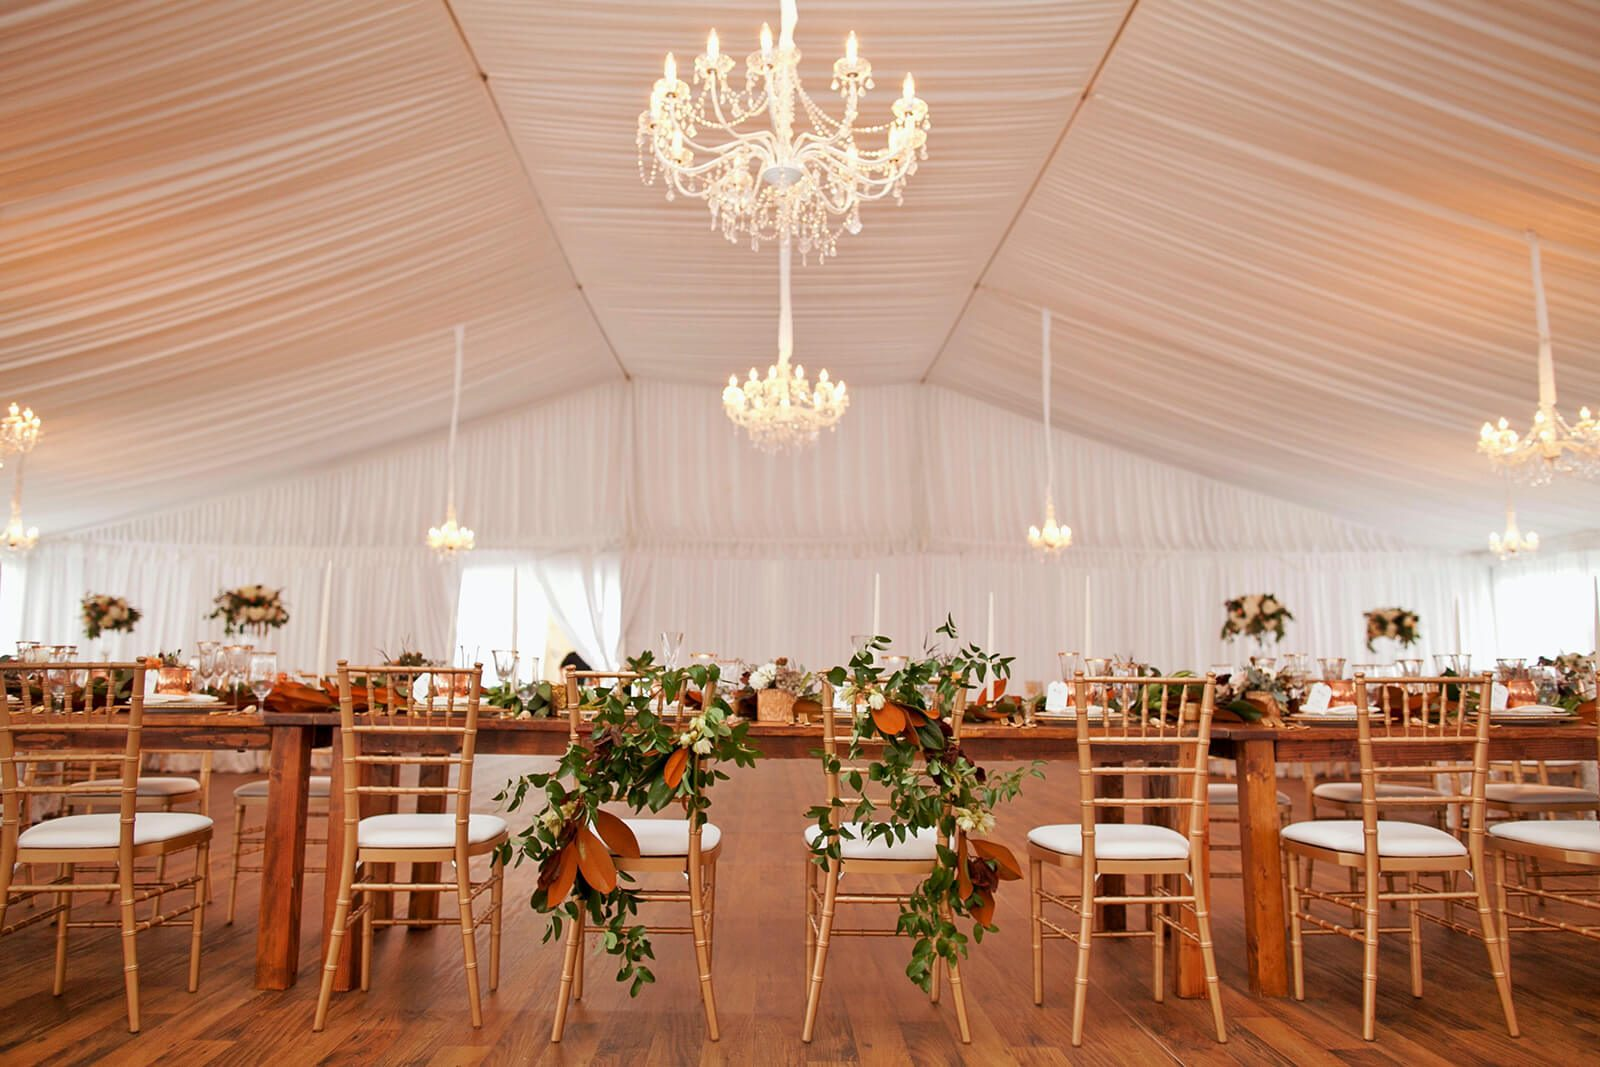 Engineered Structure Tents & Engineered Structure Tents - McCarthy Tents u0026 Events | Party and ...